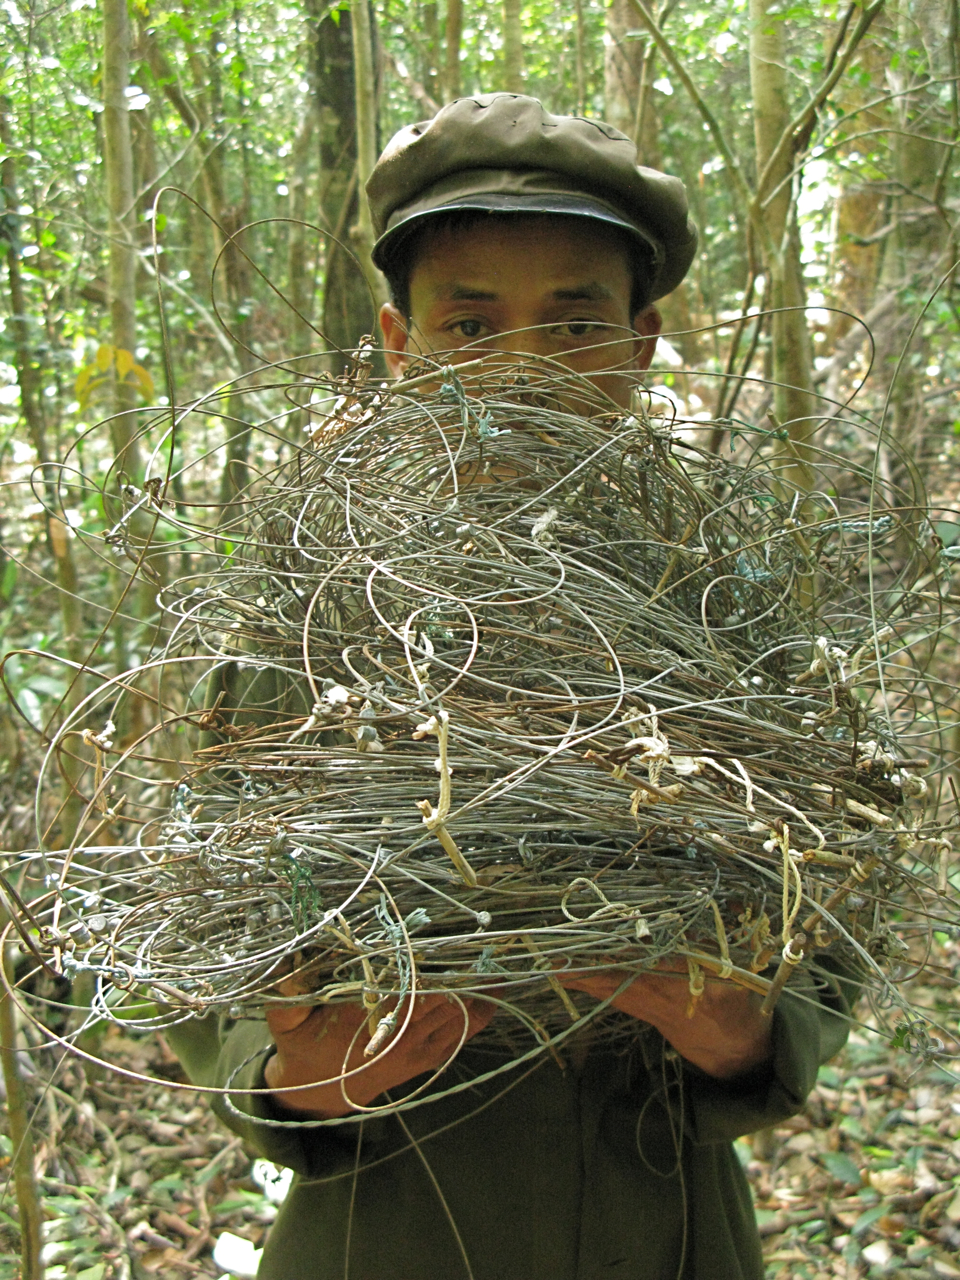 Wire snares removed from a protected area in central Laos  (Photo by William Robichaud)